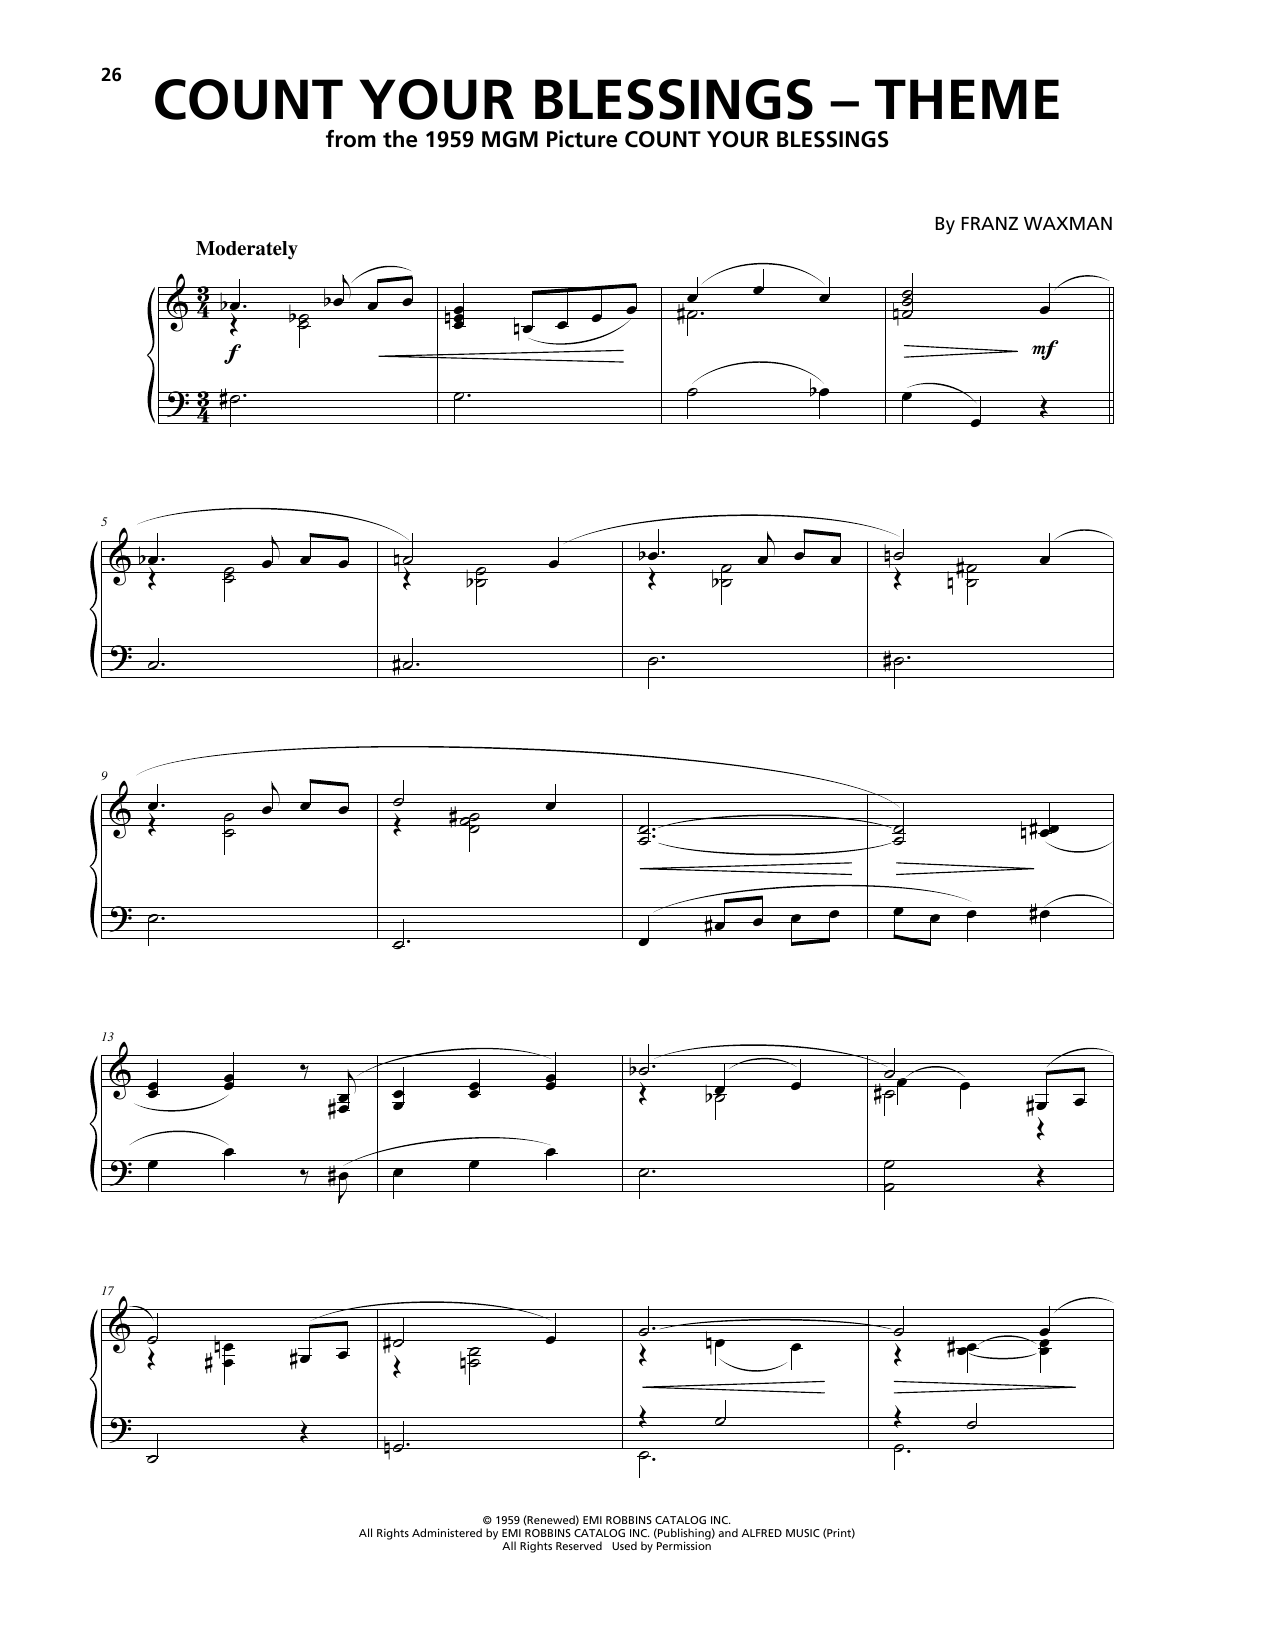 Count Your Blessings (Theme) Sheet Music